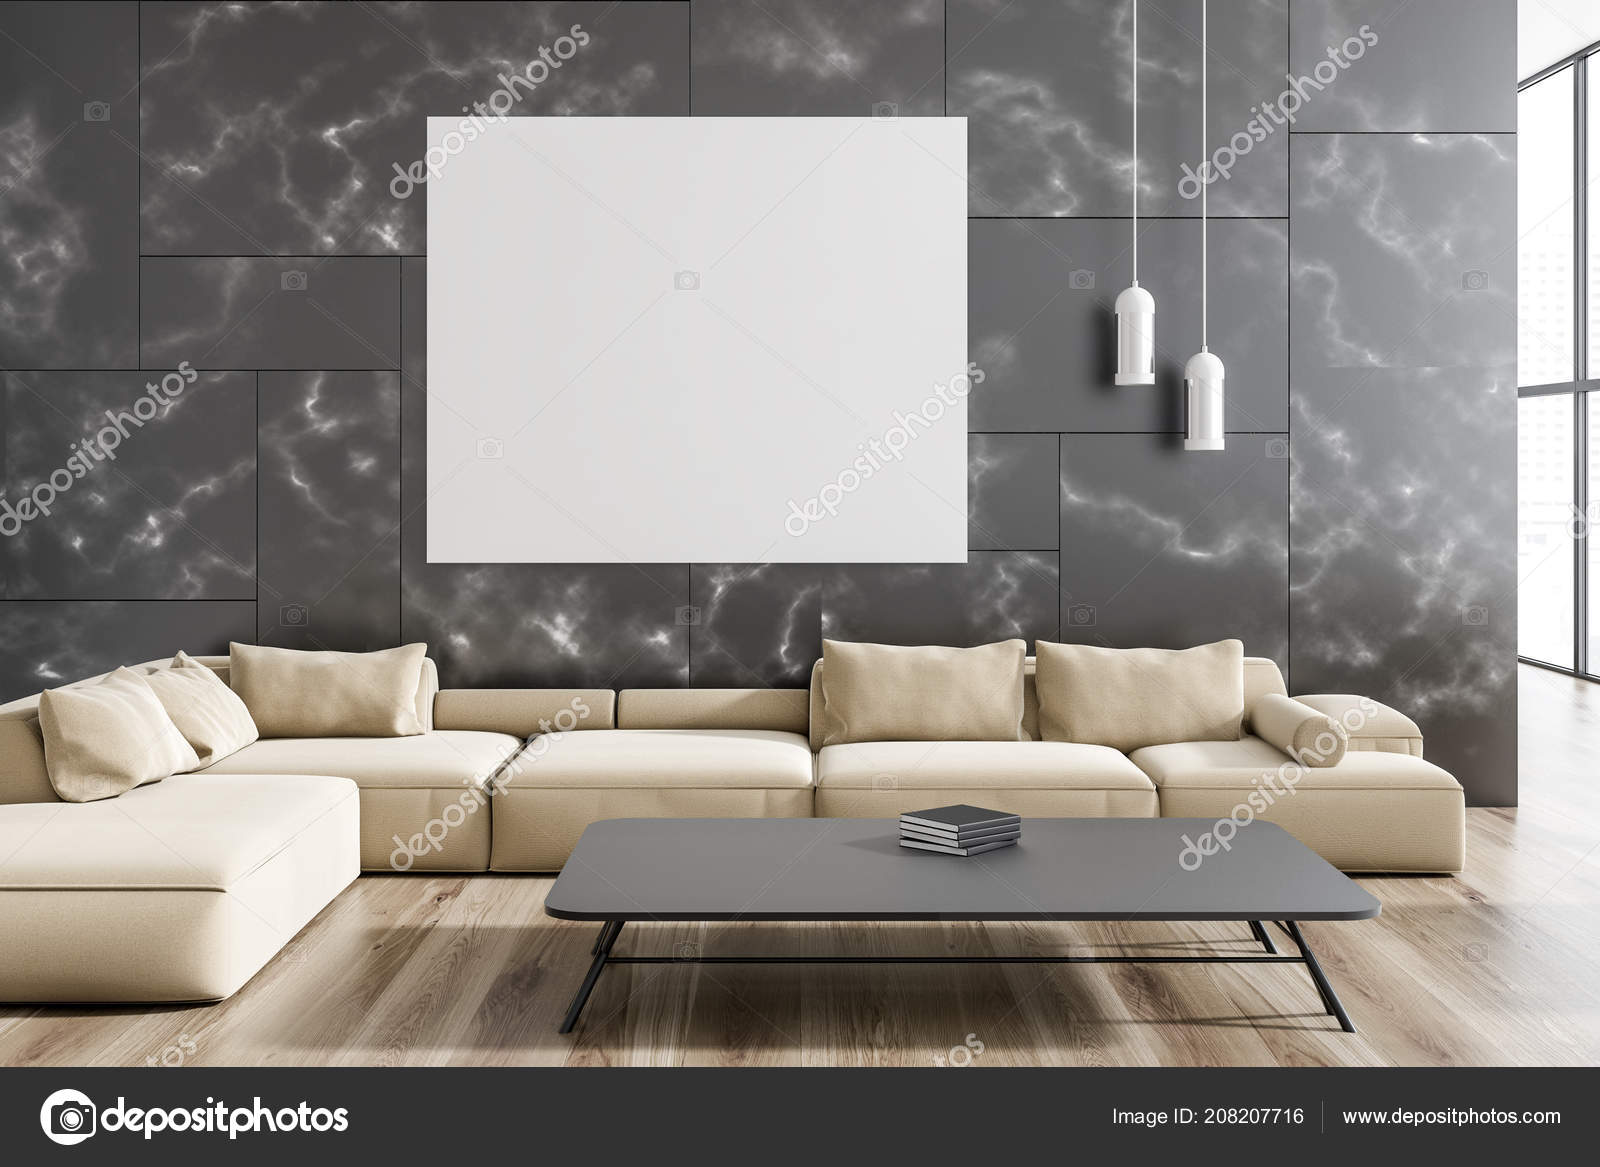 Modern Living Room Interior Black Marble Walls Wooden Floor Beige Stock Photo C Denisismagilov 208207716